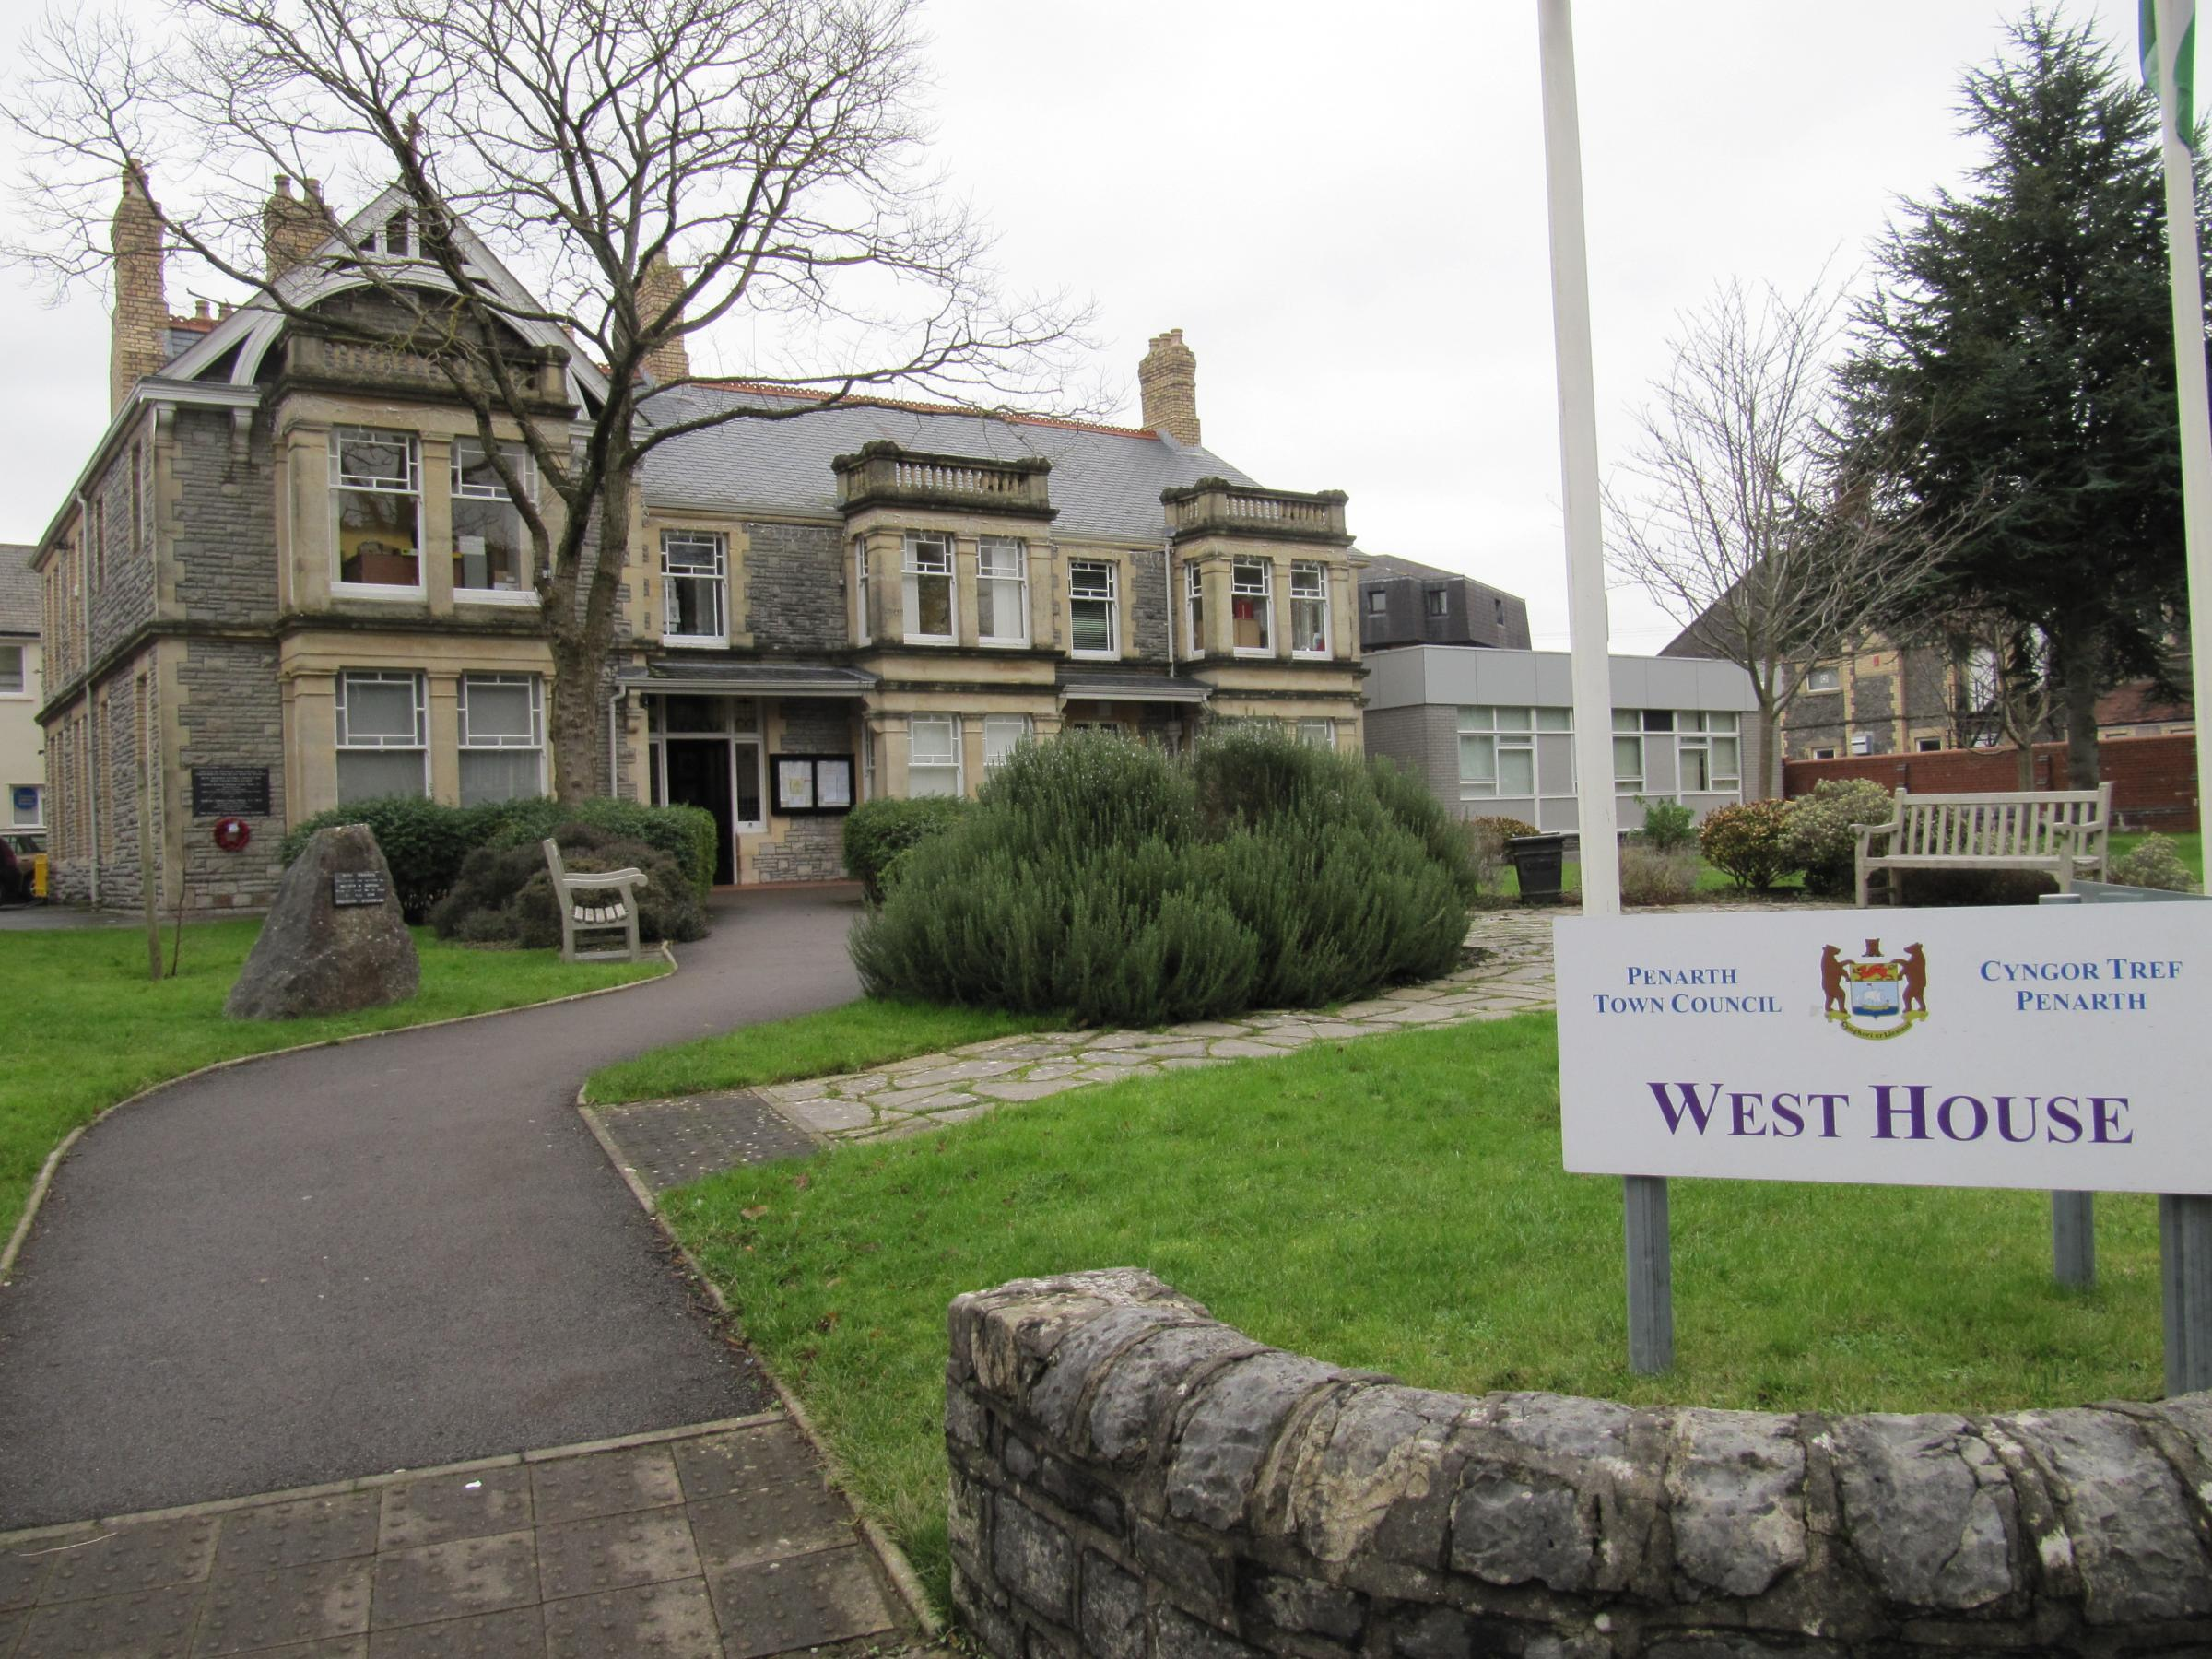 West House is one of the buildings set to undergo redevelopment if the plans are approved